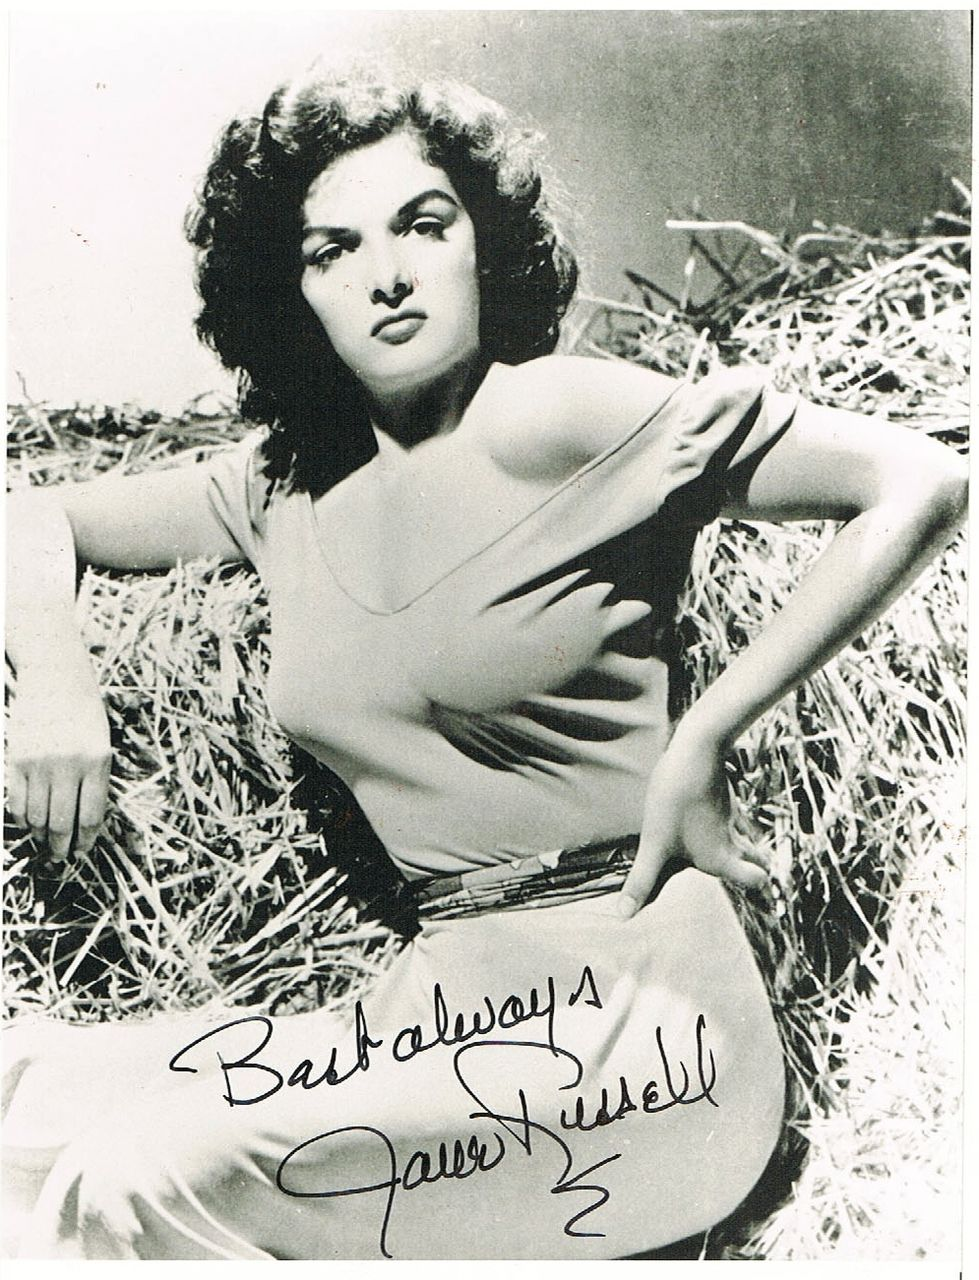 Jane Russell Autograph on Vintage Photo Print. CoA